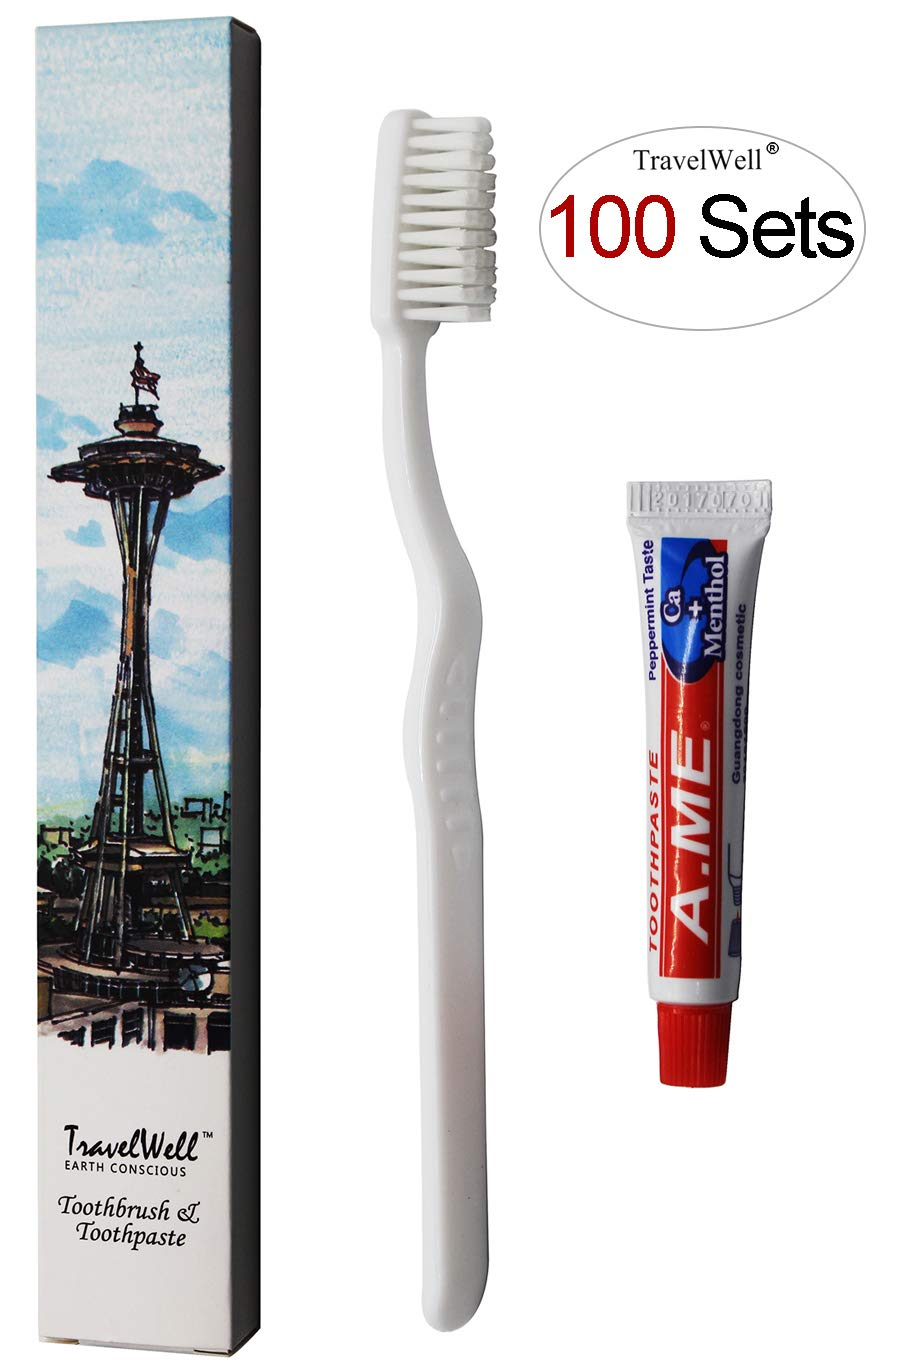 TRAVELWELL Individually Wrapped Hotel Toiletries Amenities Travel Disposable Toothbrush and Toothpaste Boxed 100 Sets per Case Landscape Series